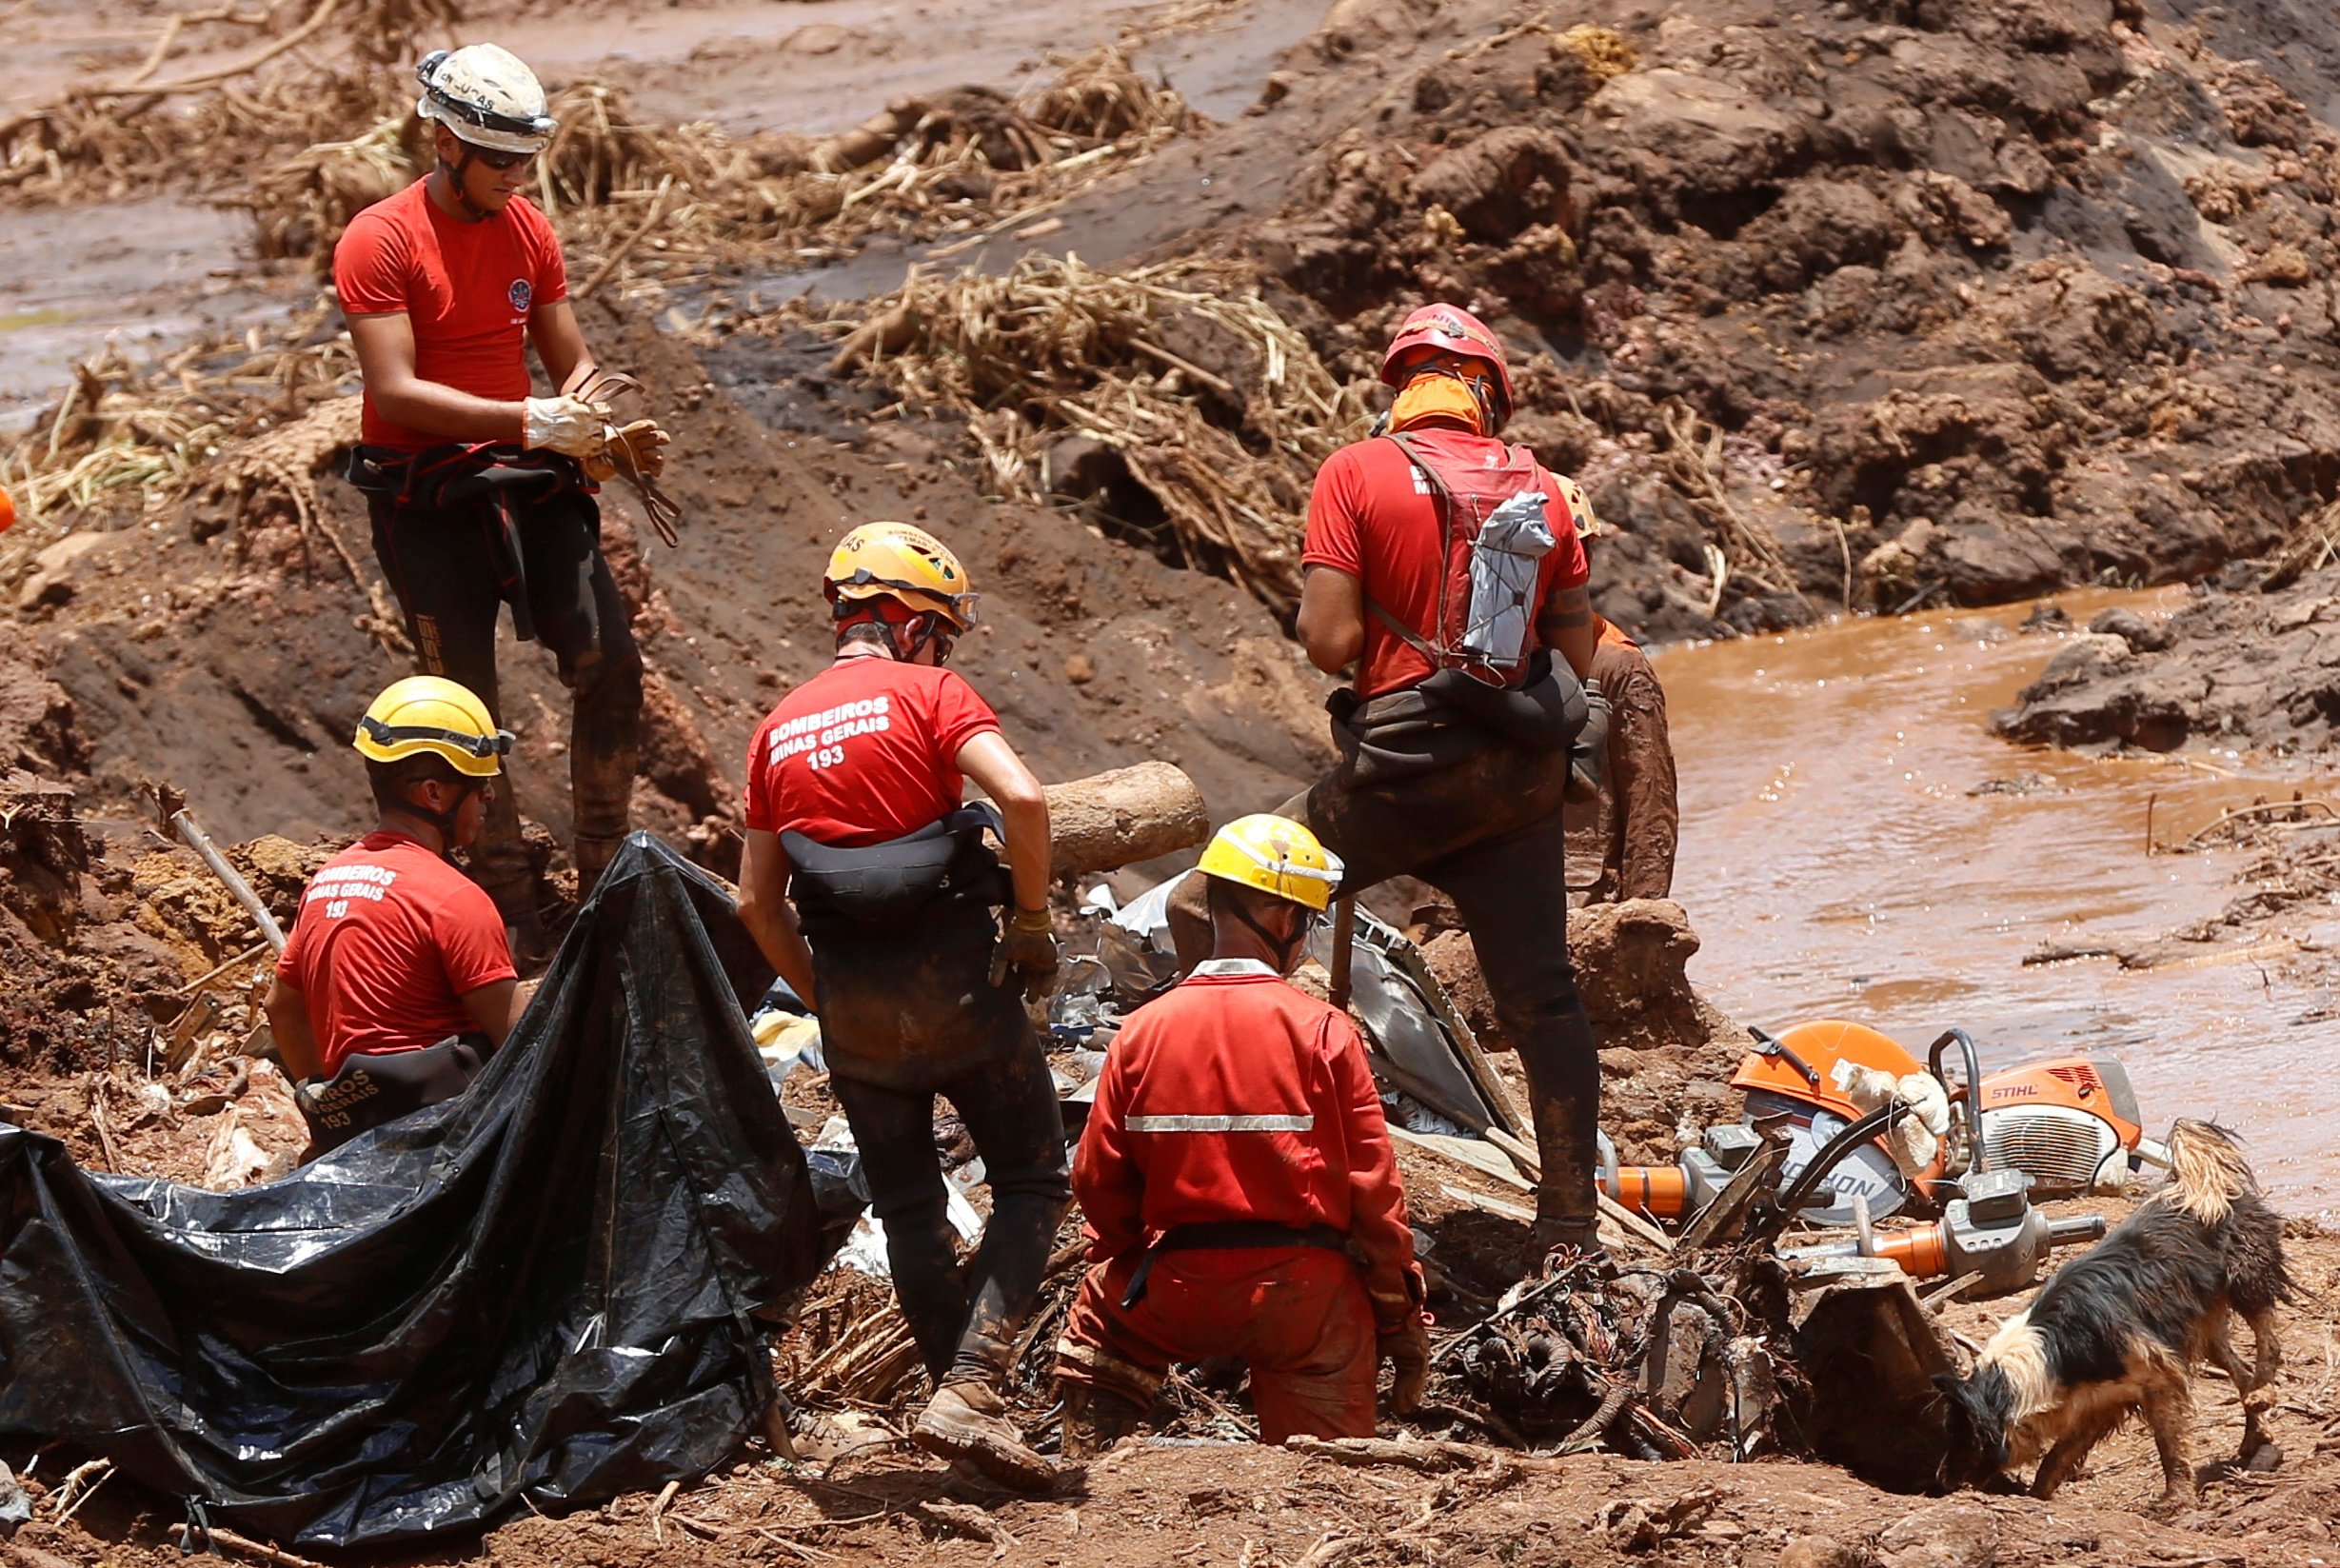 Members of a rescue team search for victims after a tailings dam owned by Brazilian mining company Vale SA collapsed, in Brumadinho, Brazil January 28, 2019. REUTERS/Adriano Machado